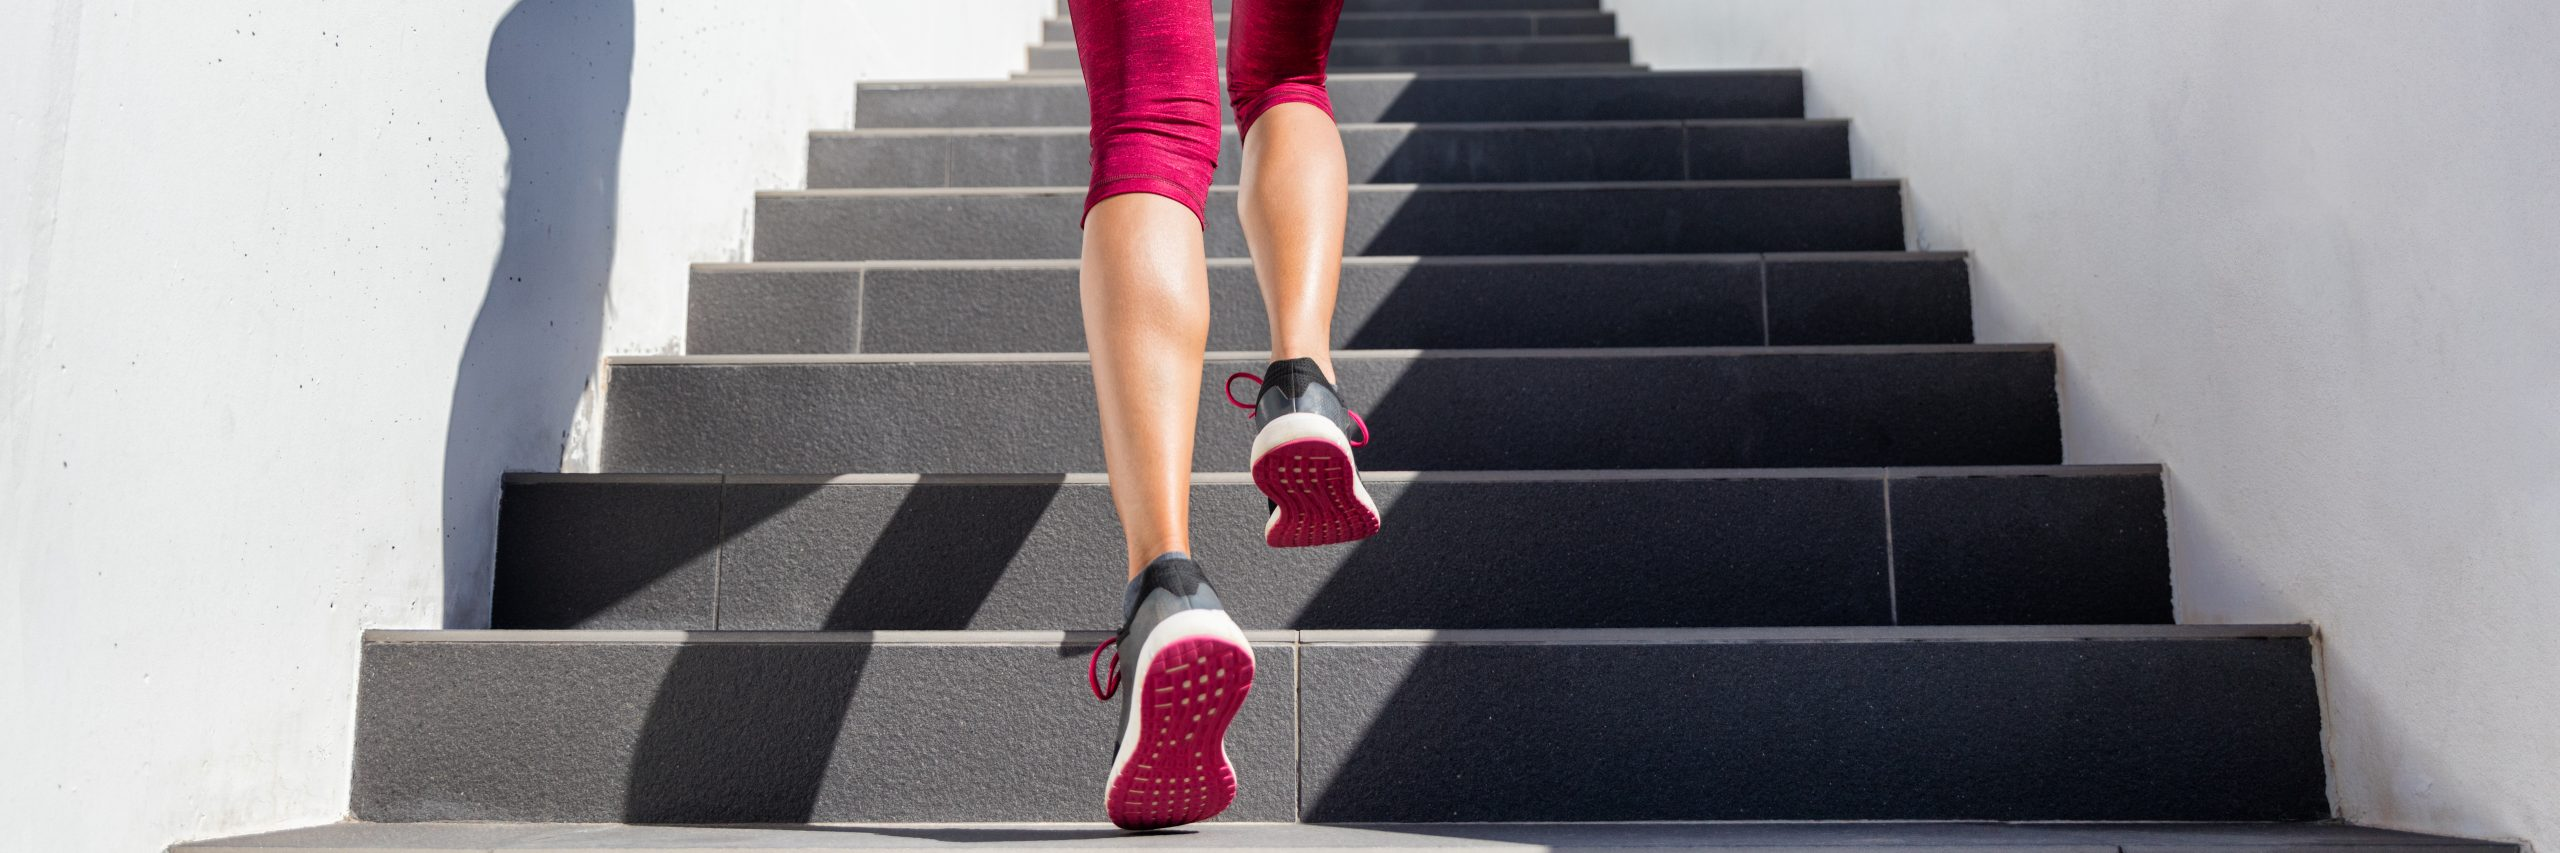 Get moving! Why You Should Always Take the Stairs